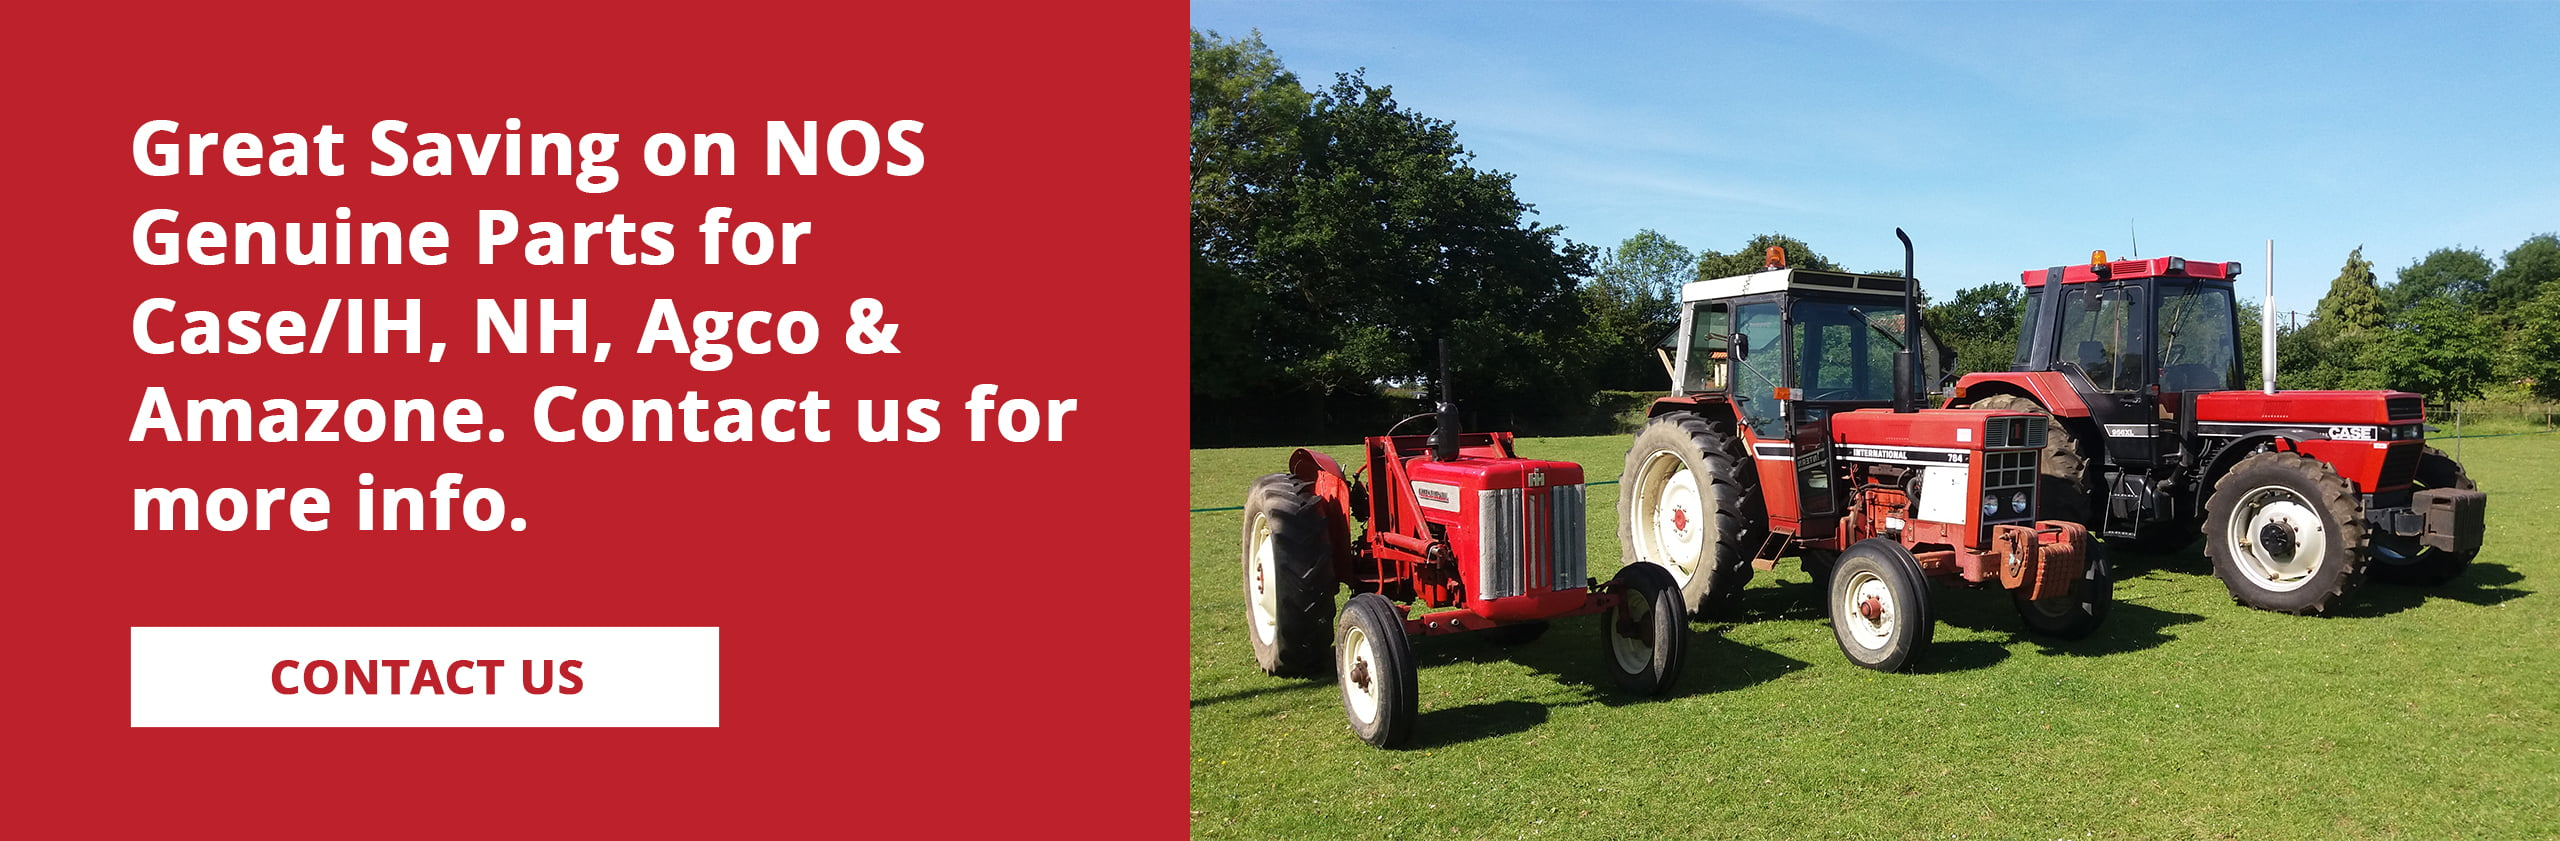 Great savings on Case/IH, NH, Agco and Amazone